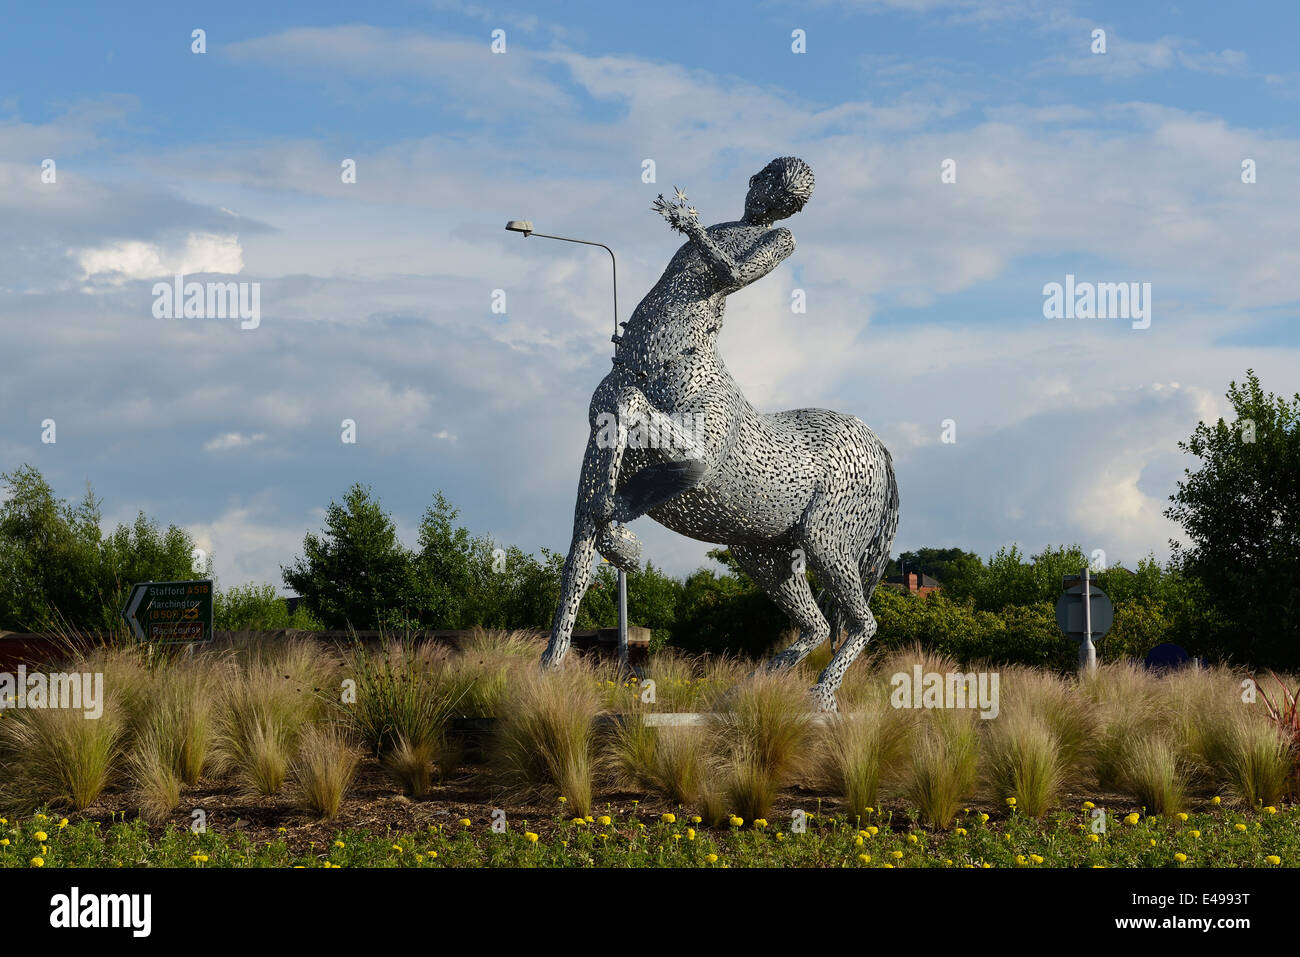 Uttoxeter public art sculpture of a Centaur by sculptor Andy Scott - Stock Image